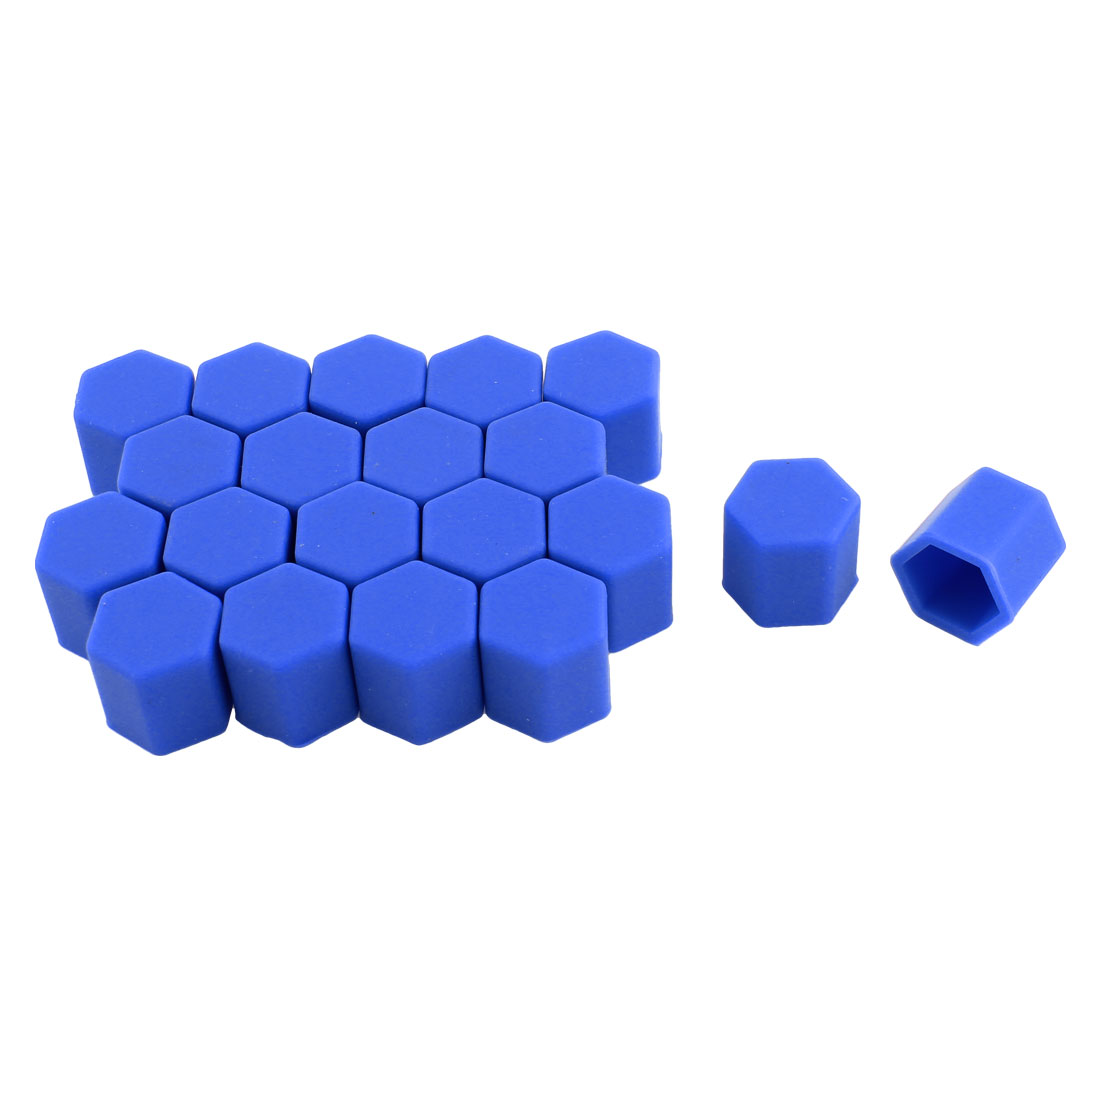 20 Pcs 17mm Blue Silicone Wheel Covers Hub Tyres Screw Dust Caps for Car